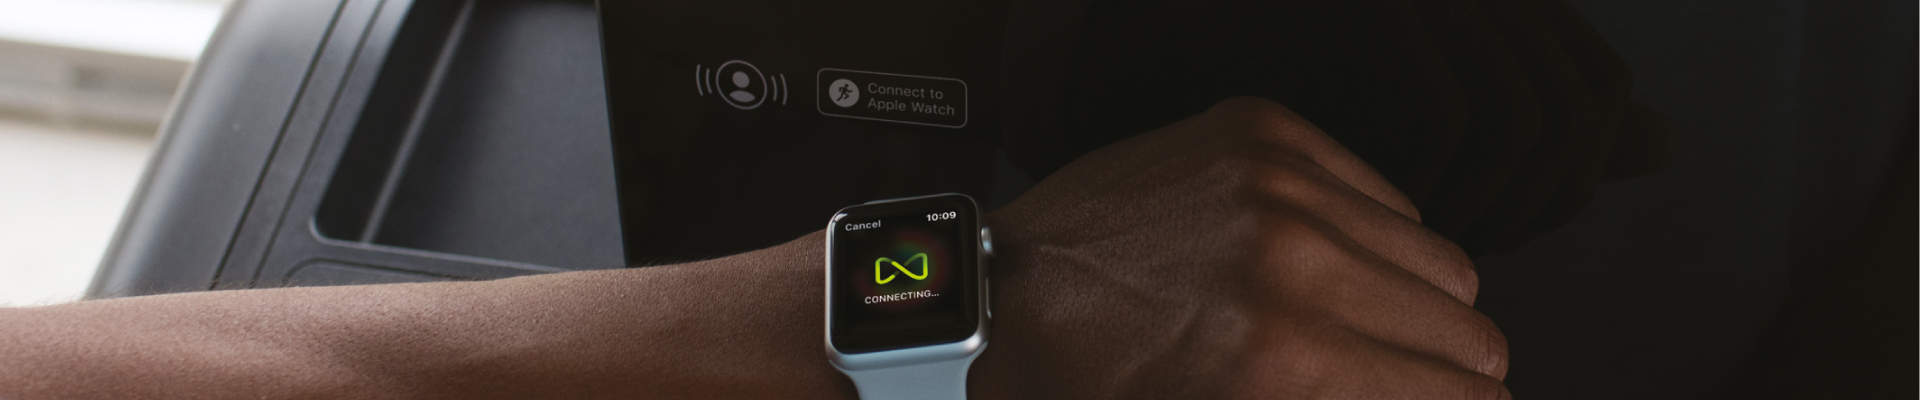 Technogym introduces Apple Watch compatibility